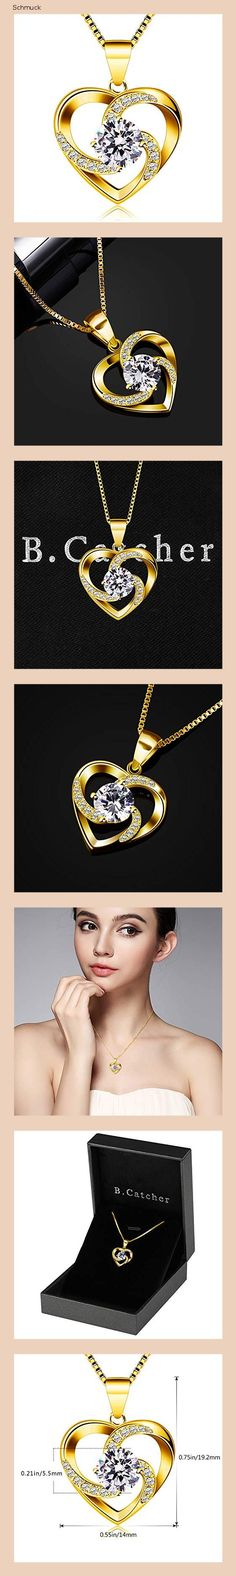 B.Catcher Kette Herz Damen Halskette 925 Sterling Silber Anhänger ''Liebe ist das Glück'' Schmuck Zirkonia 45CM Kettenlänge Geschenk für Damen (Gold) - 14nh Diamond, Gold, Jewelry, Fashion, Gifts For Ladies, Silver Pendants, Heart, Love, Schmuck